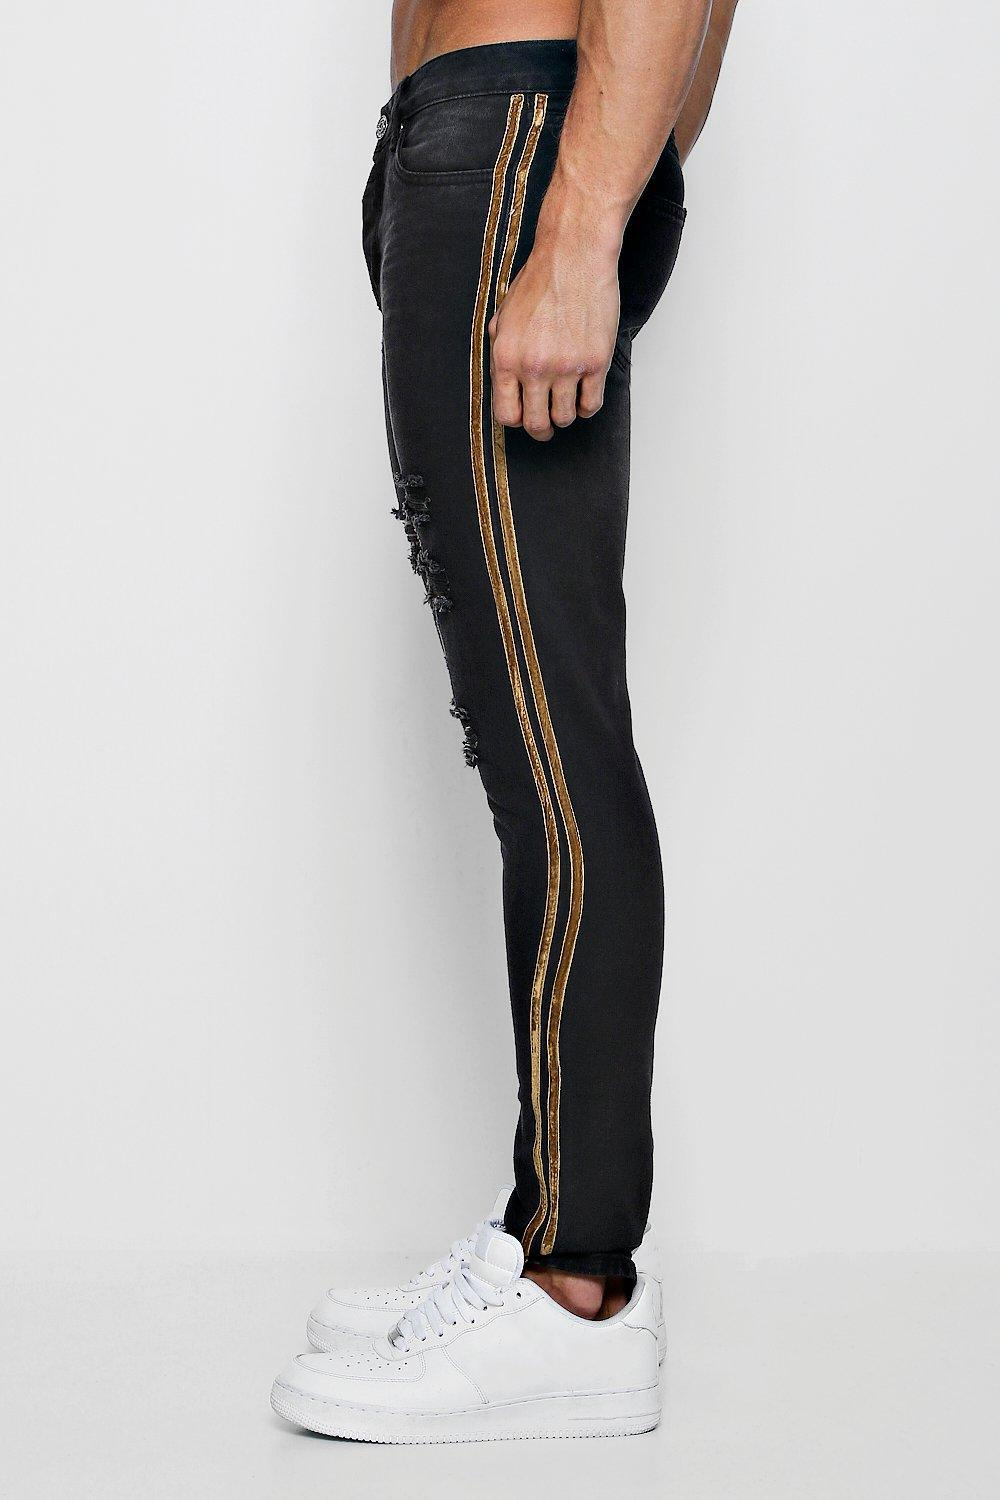 dba7fa0ebf4c4 BoohooMAN - Black Skinny Fit Distressed Jeans With Tape for Men - Lyst.  View fullscreen